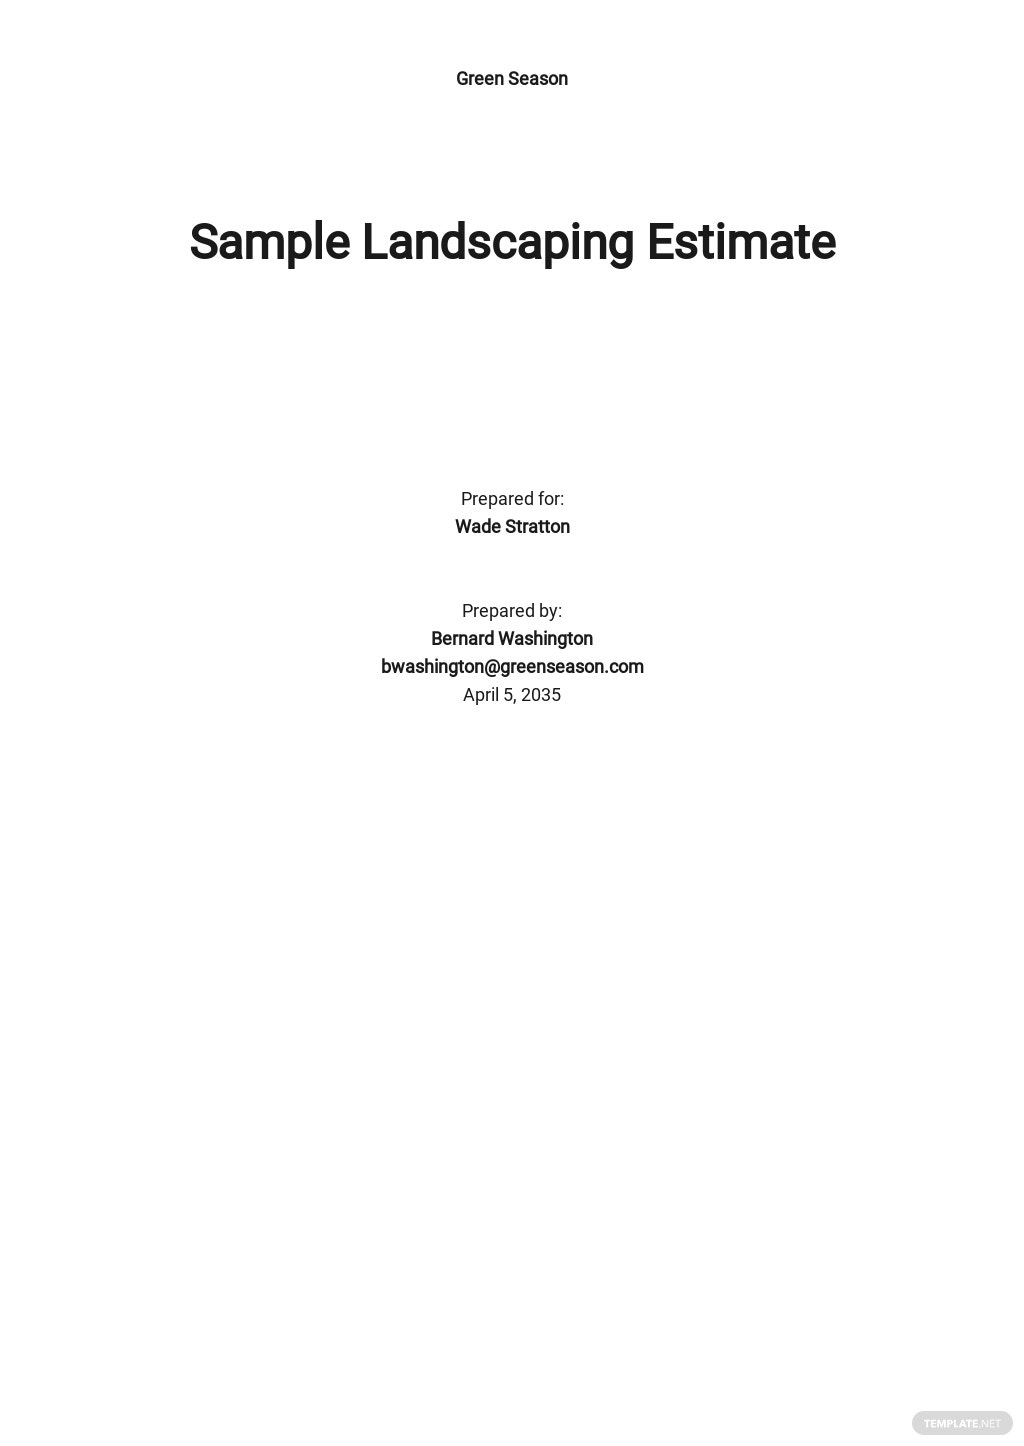 Sample Landscaping Estimate Template